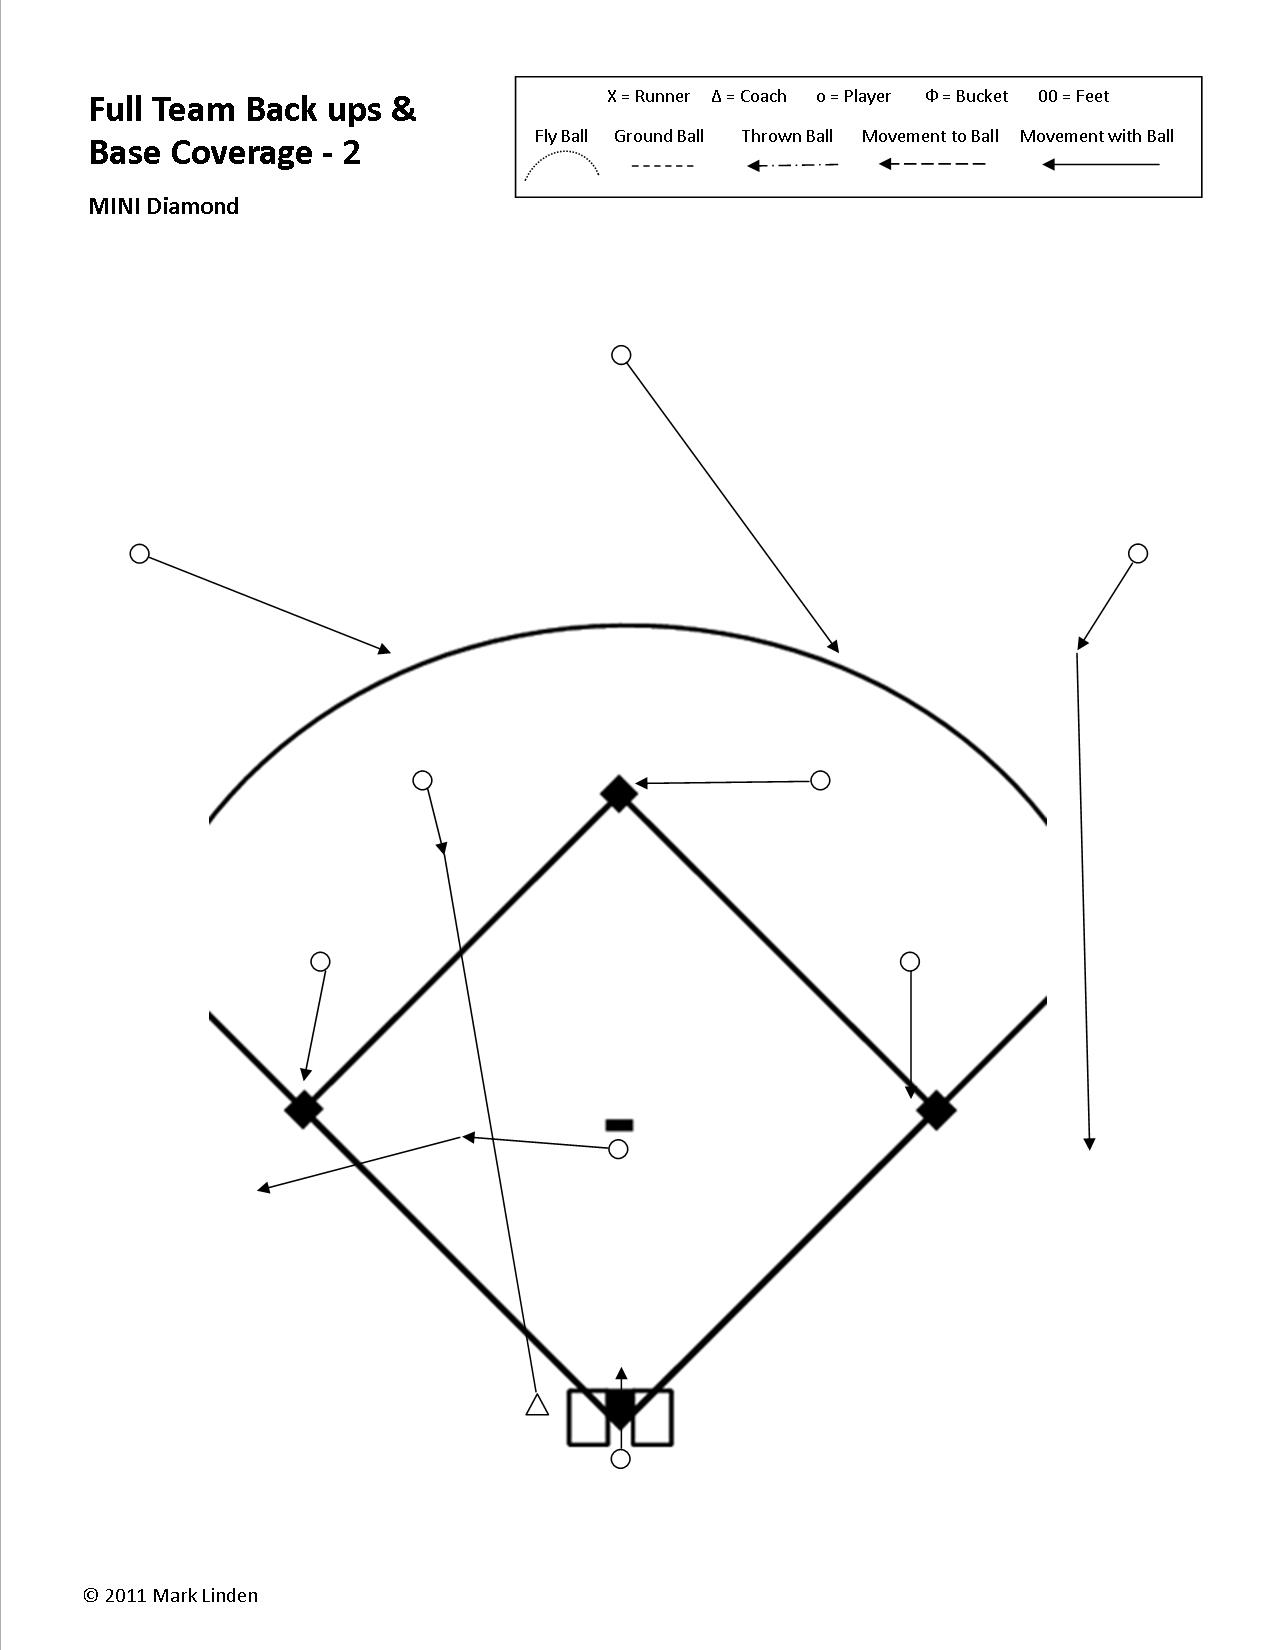 "In this example we have a ball hit to the shortstop:  --> The rule for the other three infielders is to cover a base.  --> The rule for the CF and RF is that because they are not playing the ball they are backing up a base.  --> The rule for the Pitcher is ""Always move towards the ball"". In this case the Pitcher does not field the ball so they continue running in a straight line towards third base. They see the base is covered, so go to their next responsibility of  b acking-up the base.  --> The rule for the LEFT FIELDER, because the ball is hit to an infielder in front of them, is to go for the  b all. Not until they see the ball is caught by the fielder in front of them does their responsibility change to moving to back up a throw. In this case getting to the initial backing-up position is not a concern because the Pitcher is backing up third base.  However, the Left Fielder does visually follow the ball and prepares for the possibility that the ball may be moved around the infield and they may be needed, later in the play, to back up a throw to second or third base."